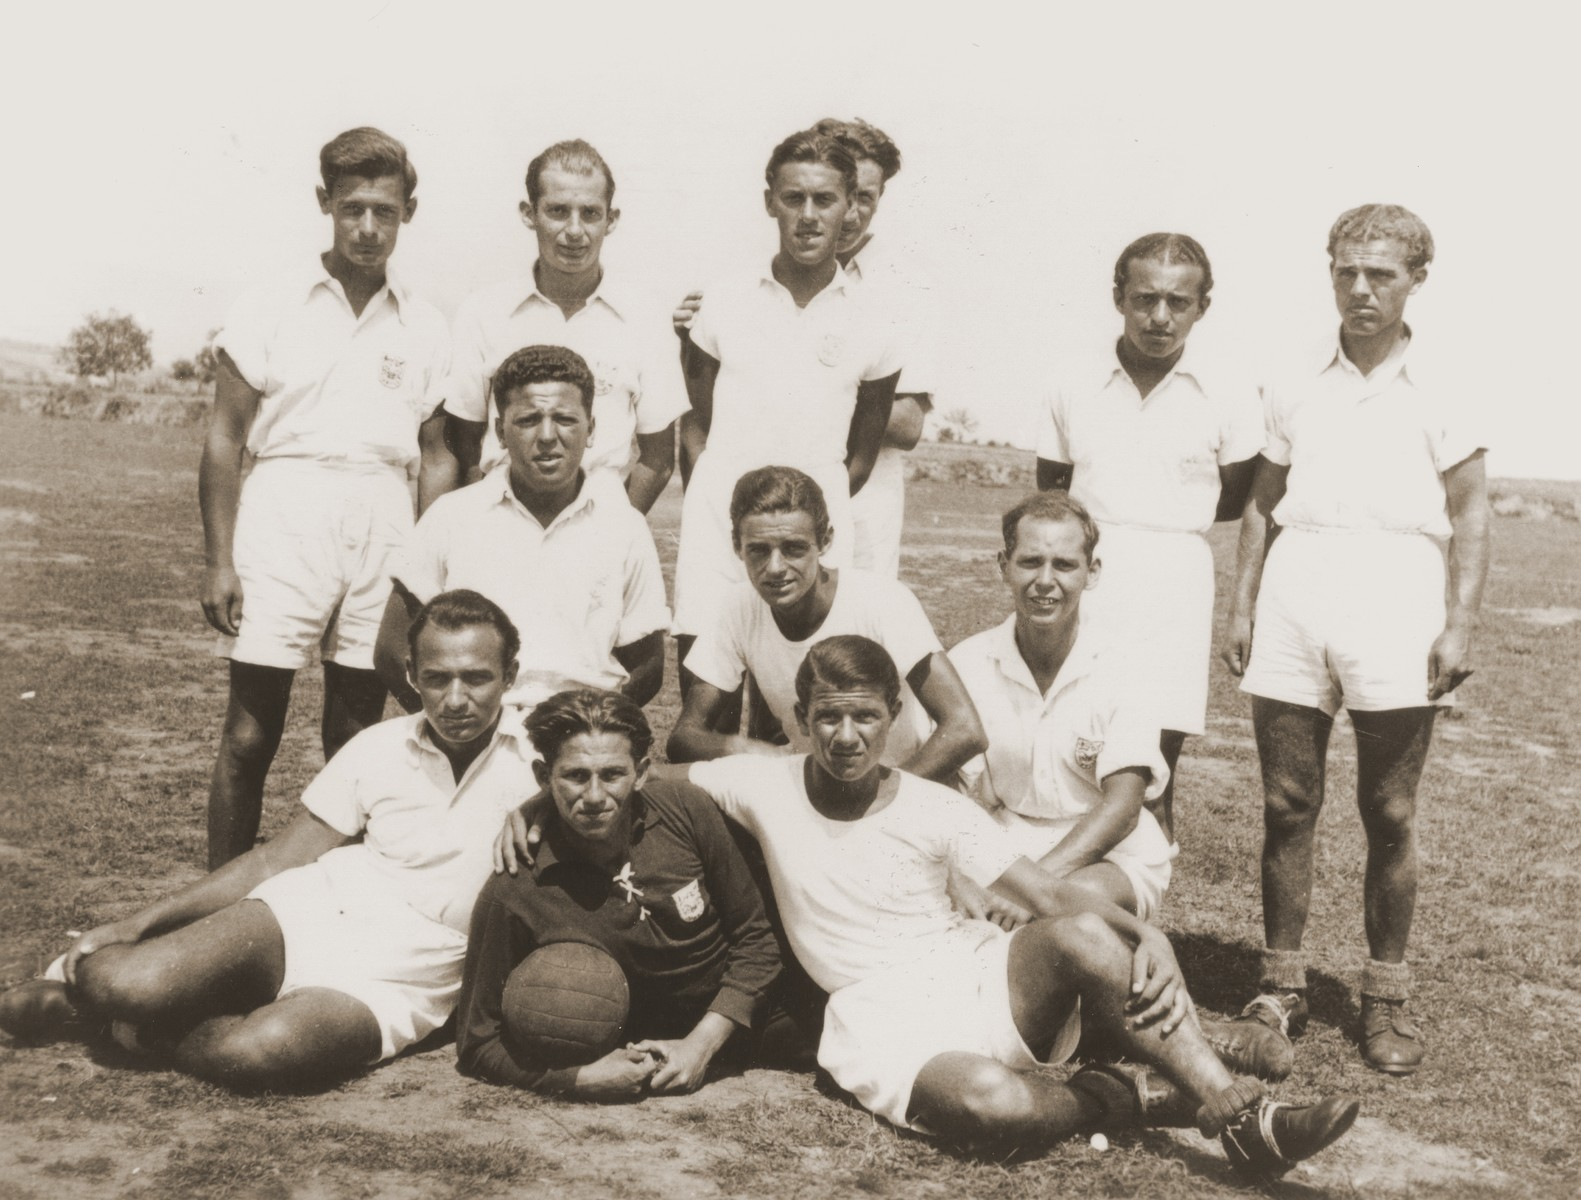 A sports team comprised of Jewish youth from the Kladovo transport.